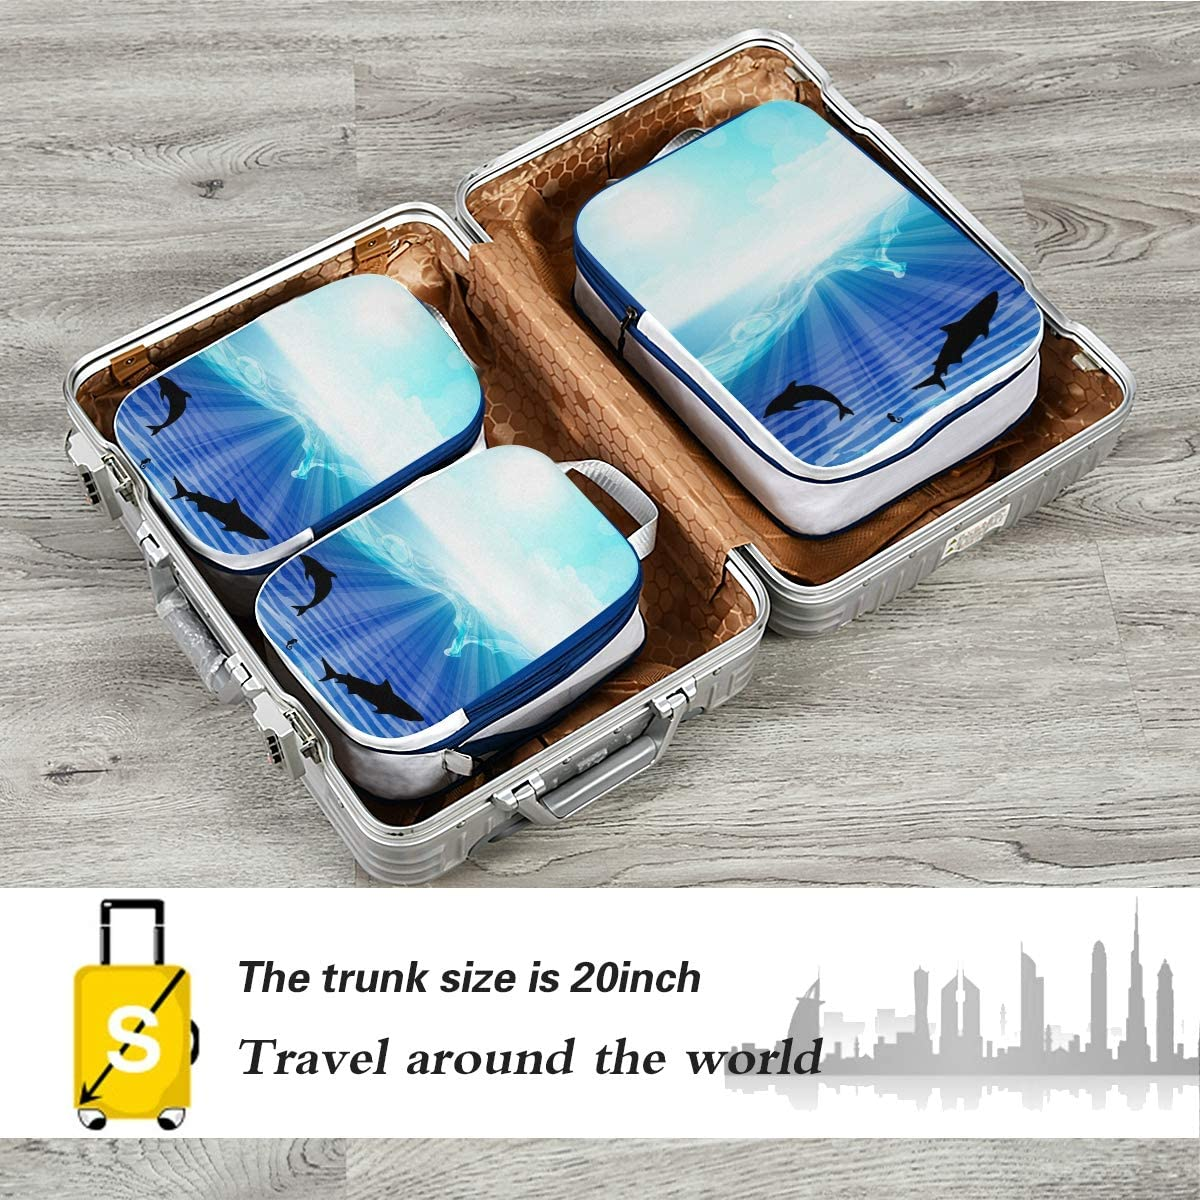 LUPINZ Jumping Dolphins Travel Luggage Packing Organizers 3 Pieces Travel Cubes